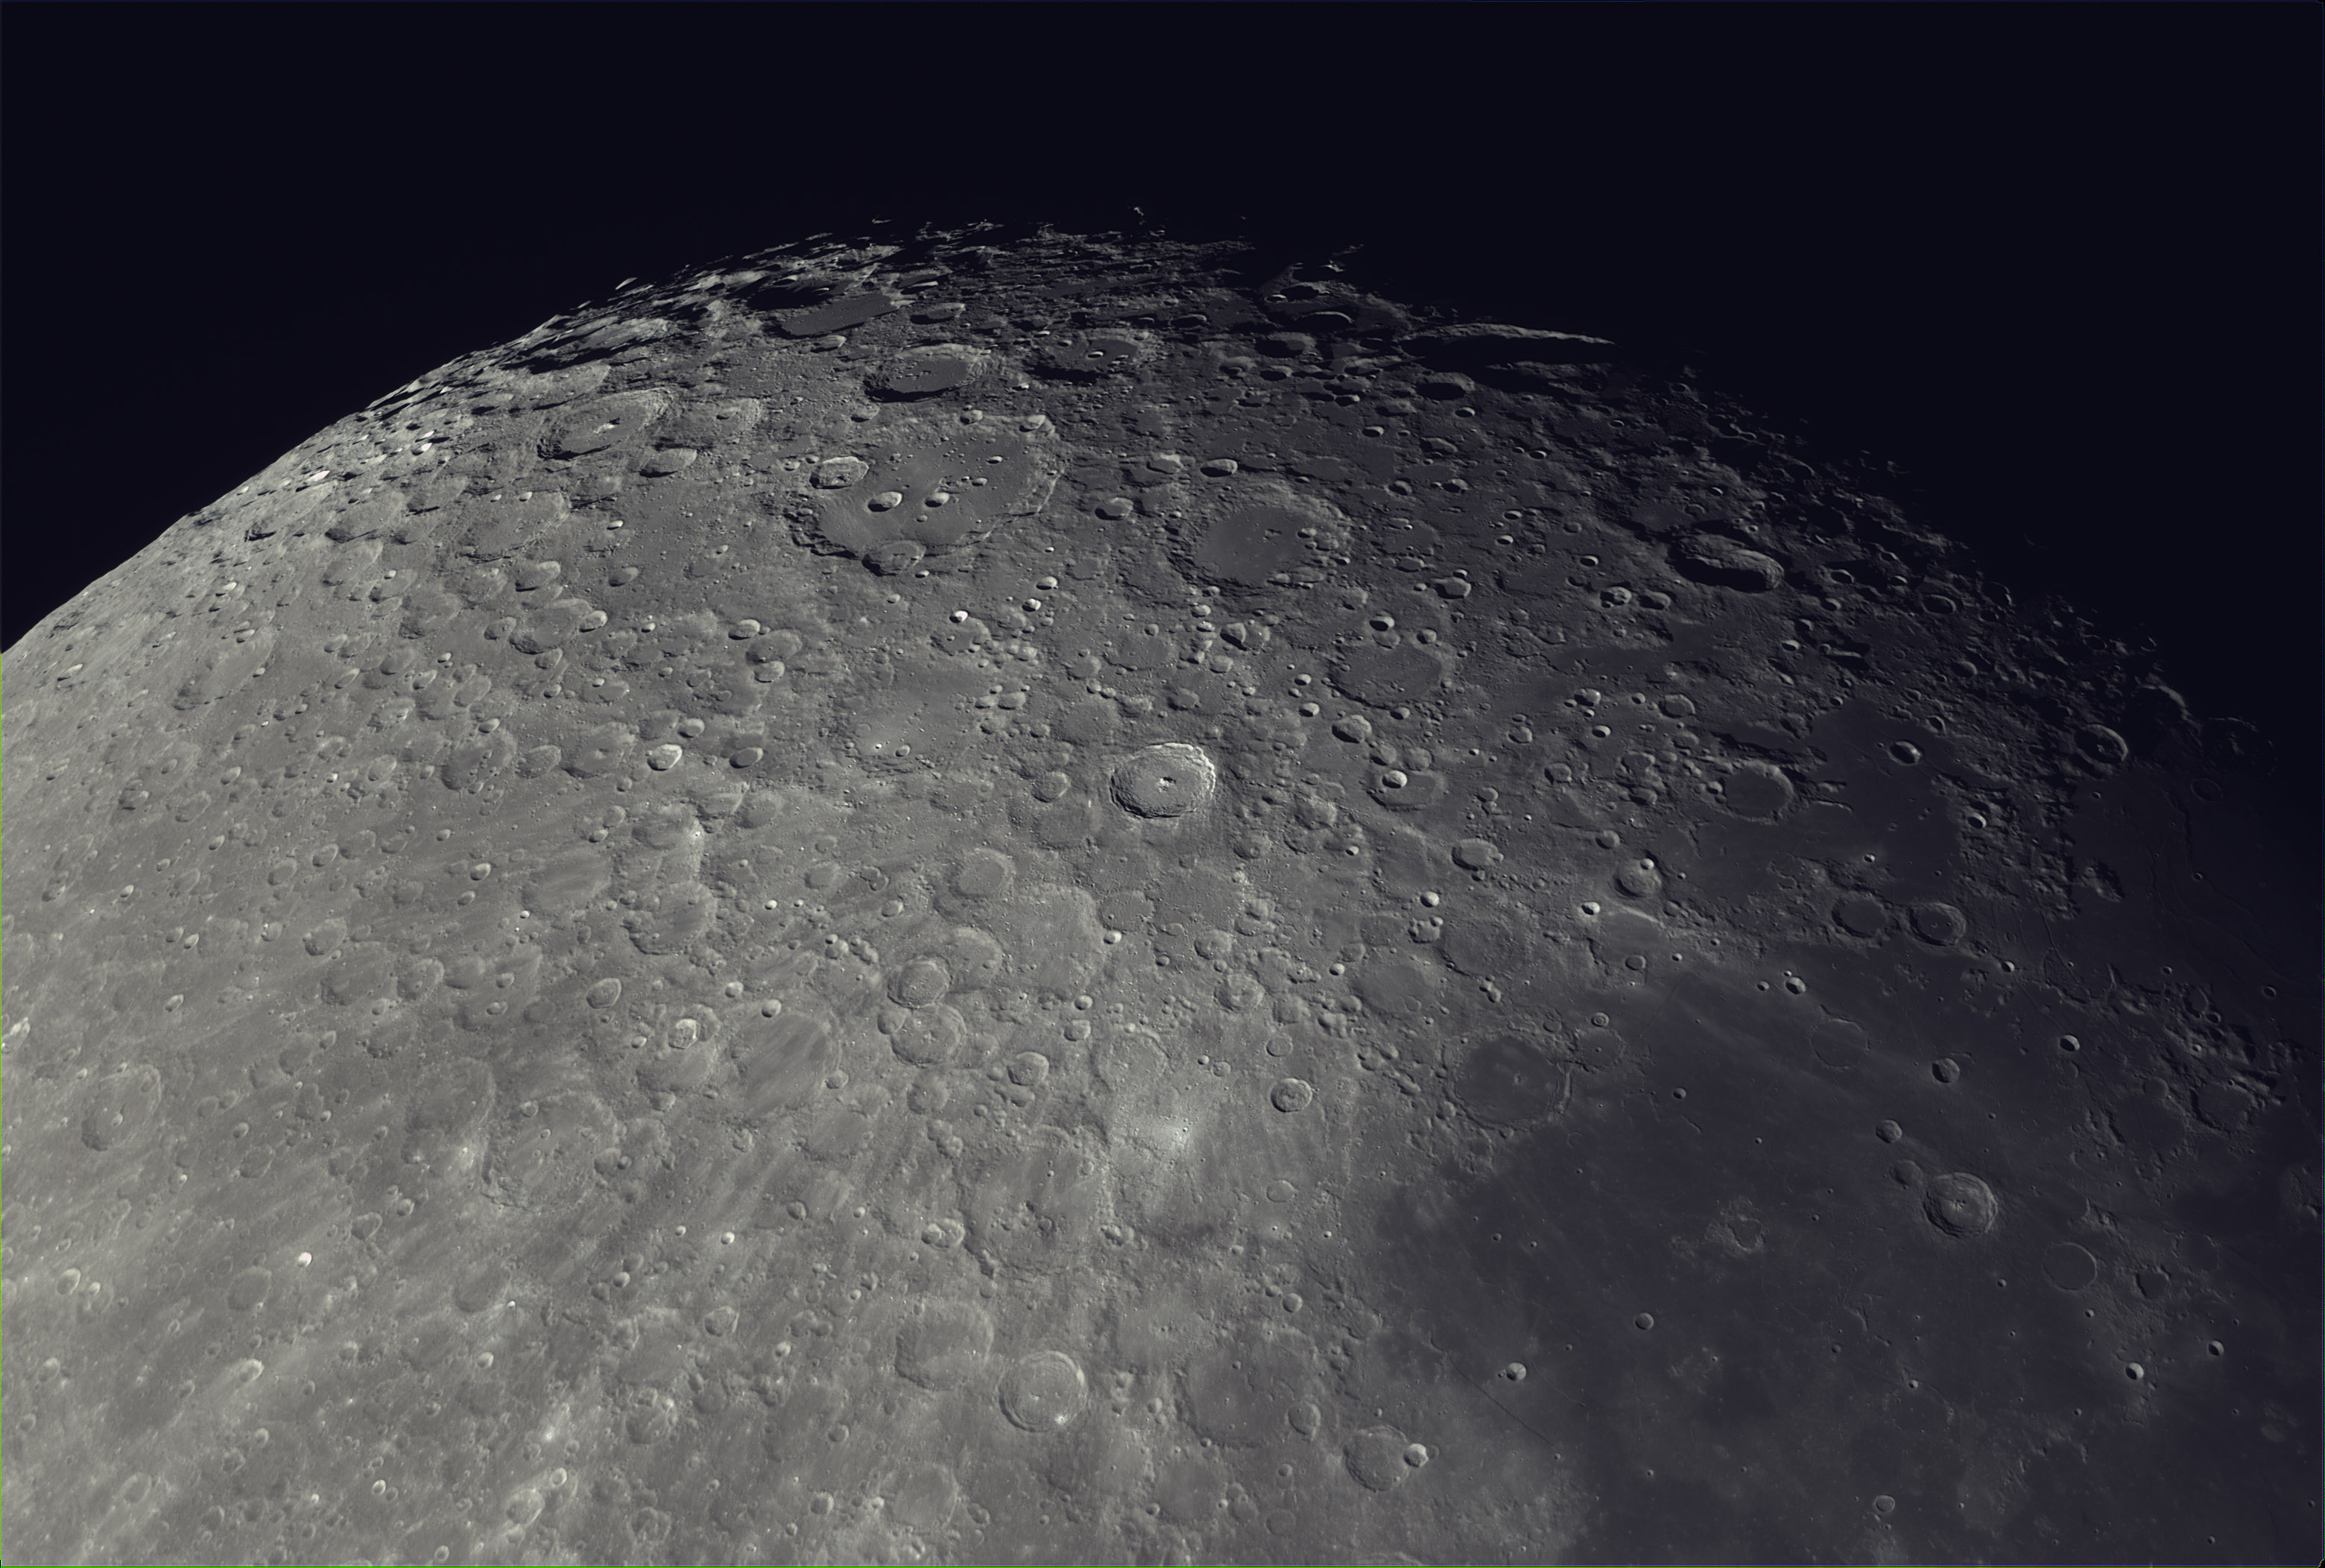 Moon_210607_lapl2_ap1439_enhanced.jpg